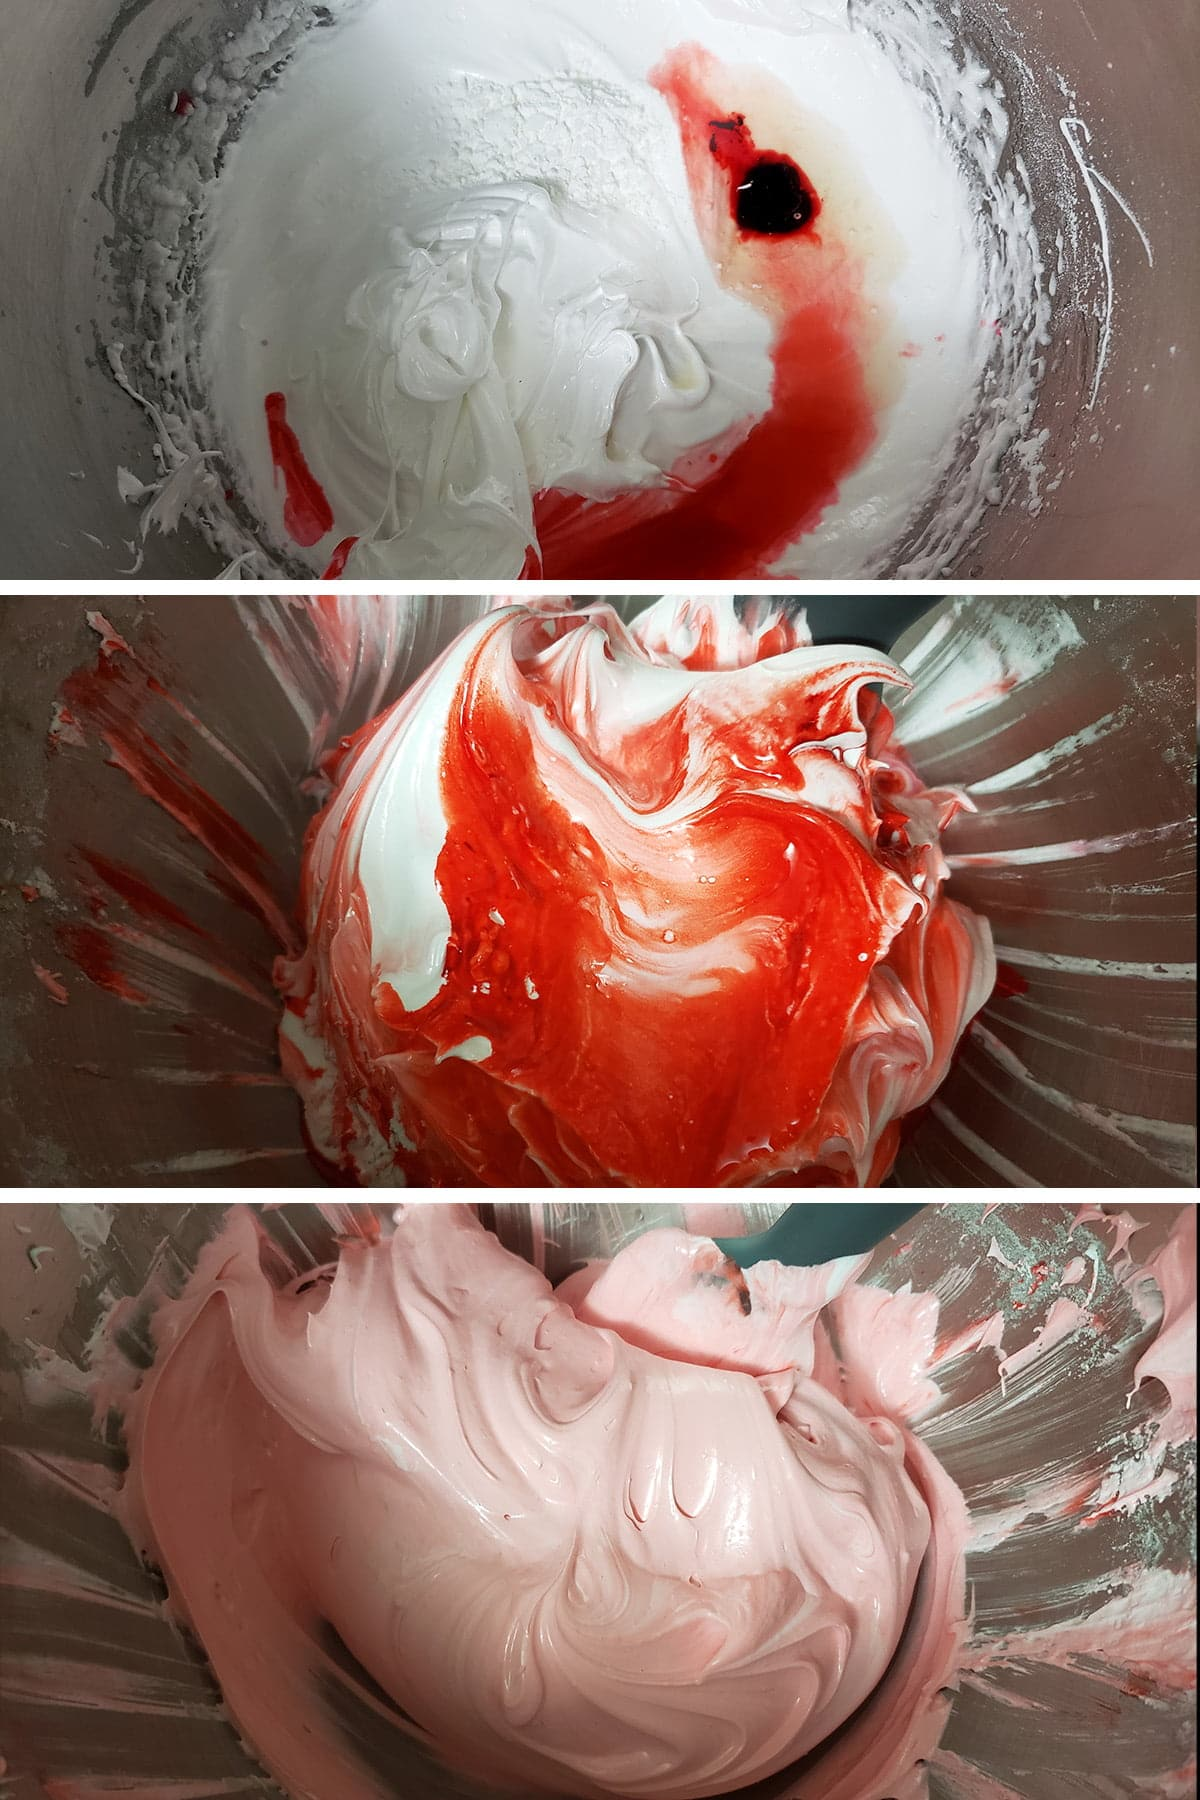 A 3 part compilation image showing stages of adding food colouring, cornstarch, and vinegar to the meringue, and gently stirring it in.